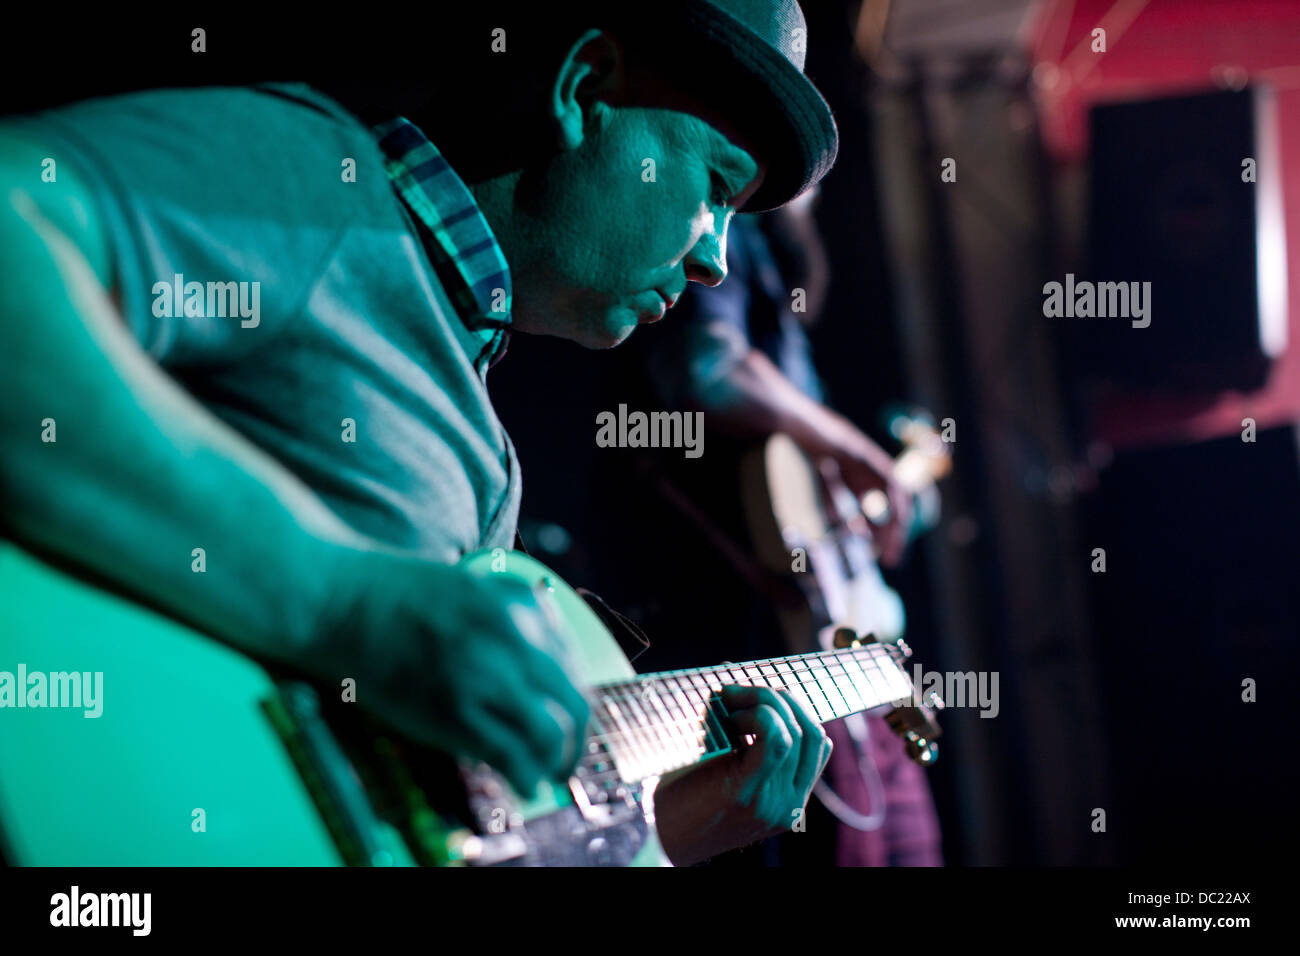 Man playing guitar on stage in nightclub - Stock Image